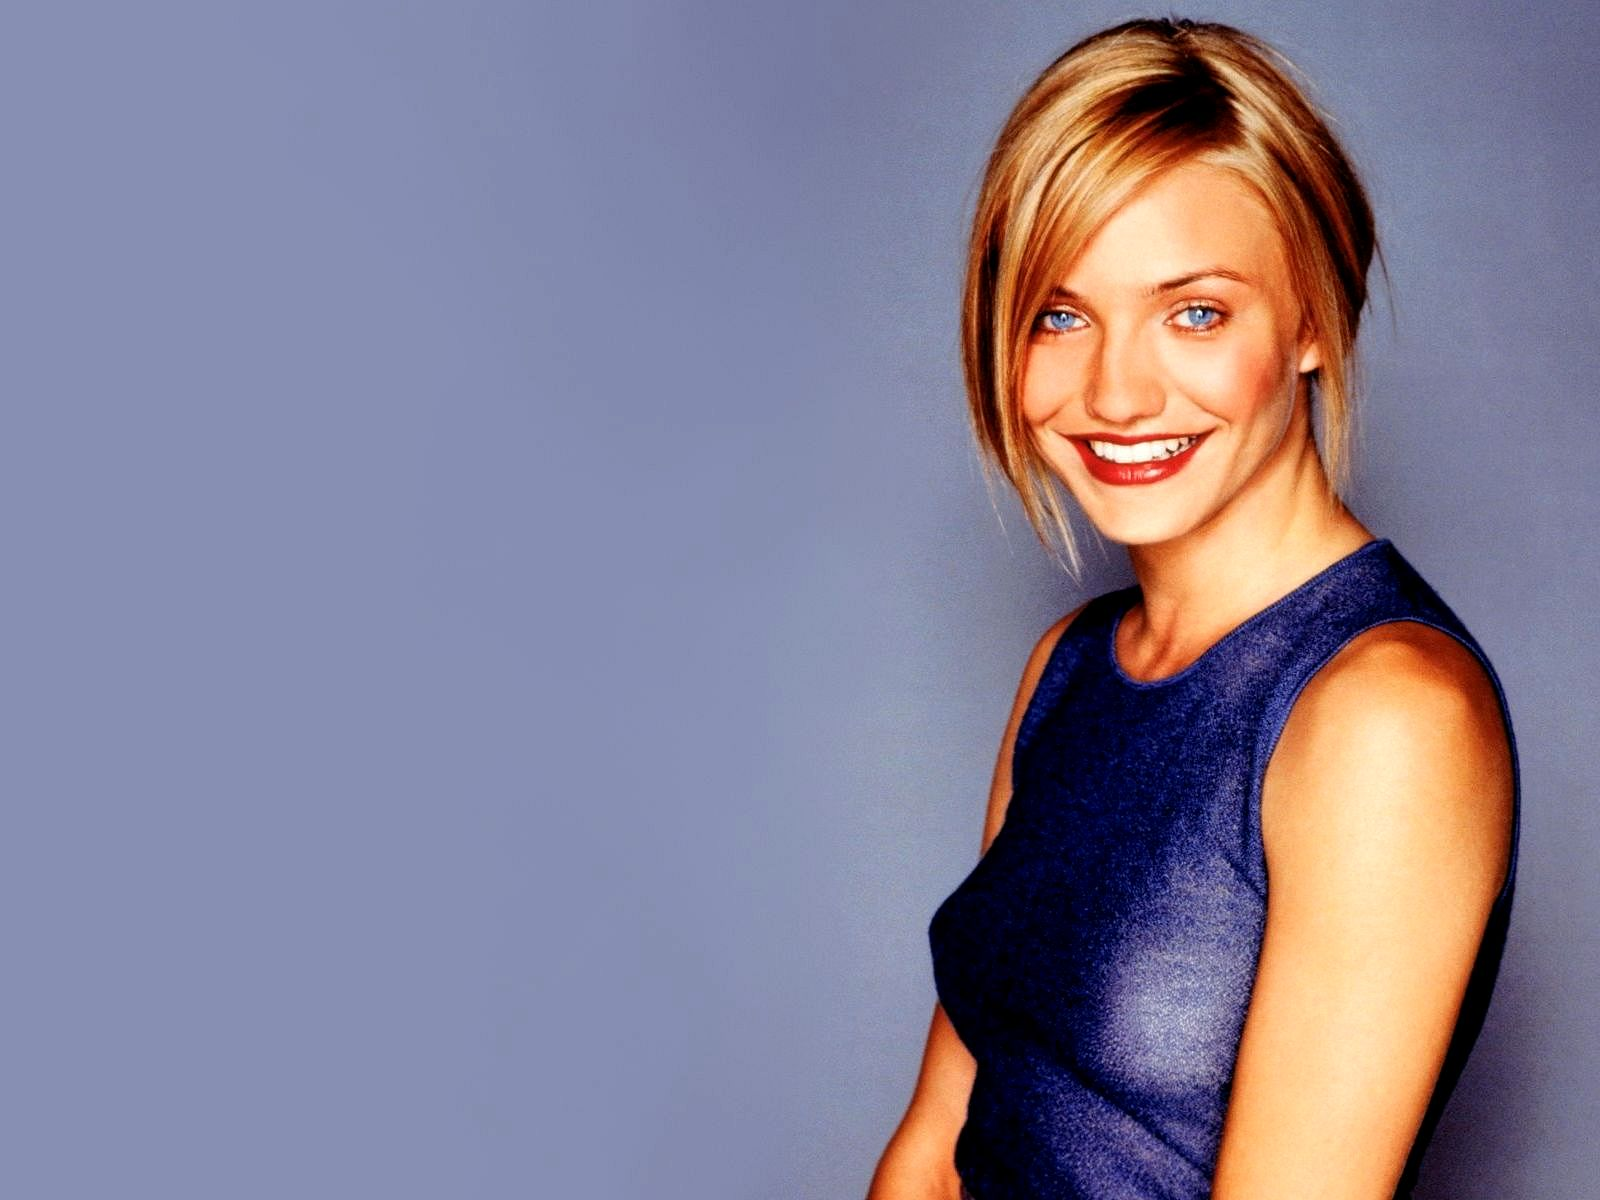 HD Wallpepars Cameron Diaz HD Wallpapers 1600x1200